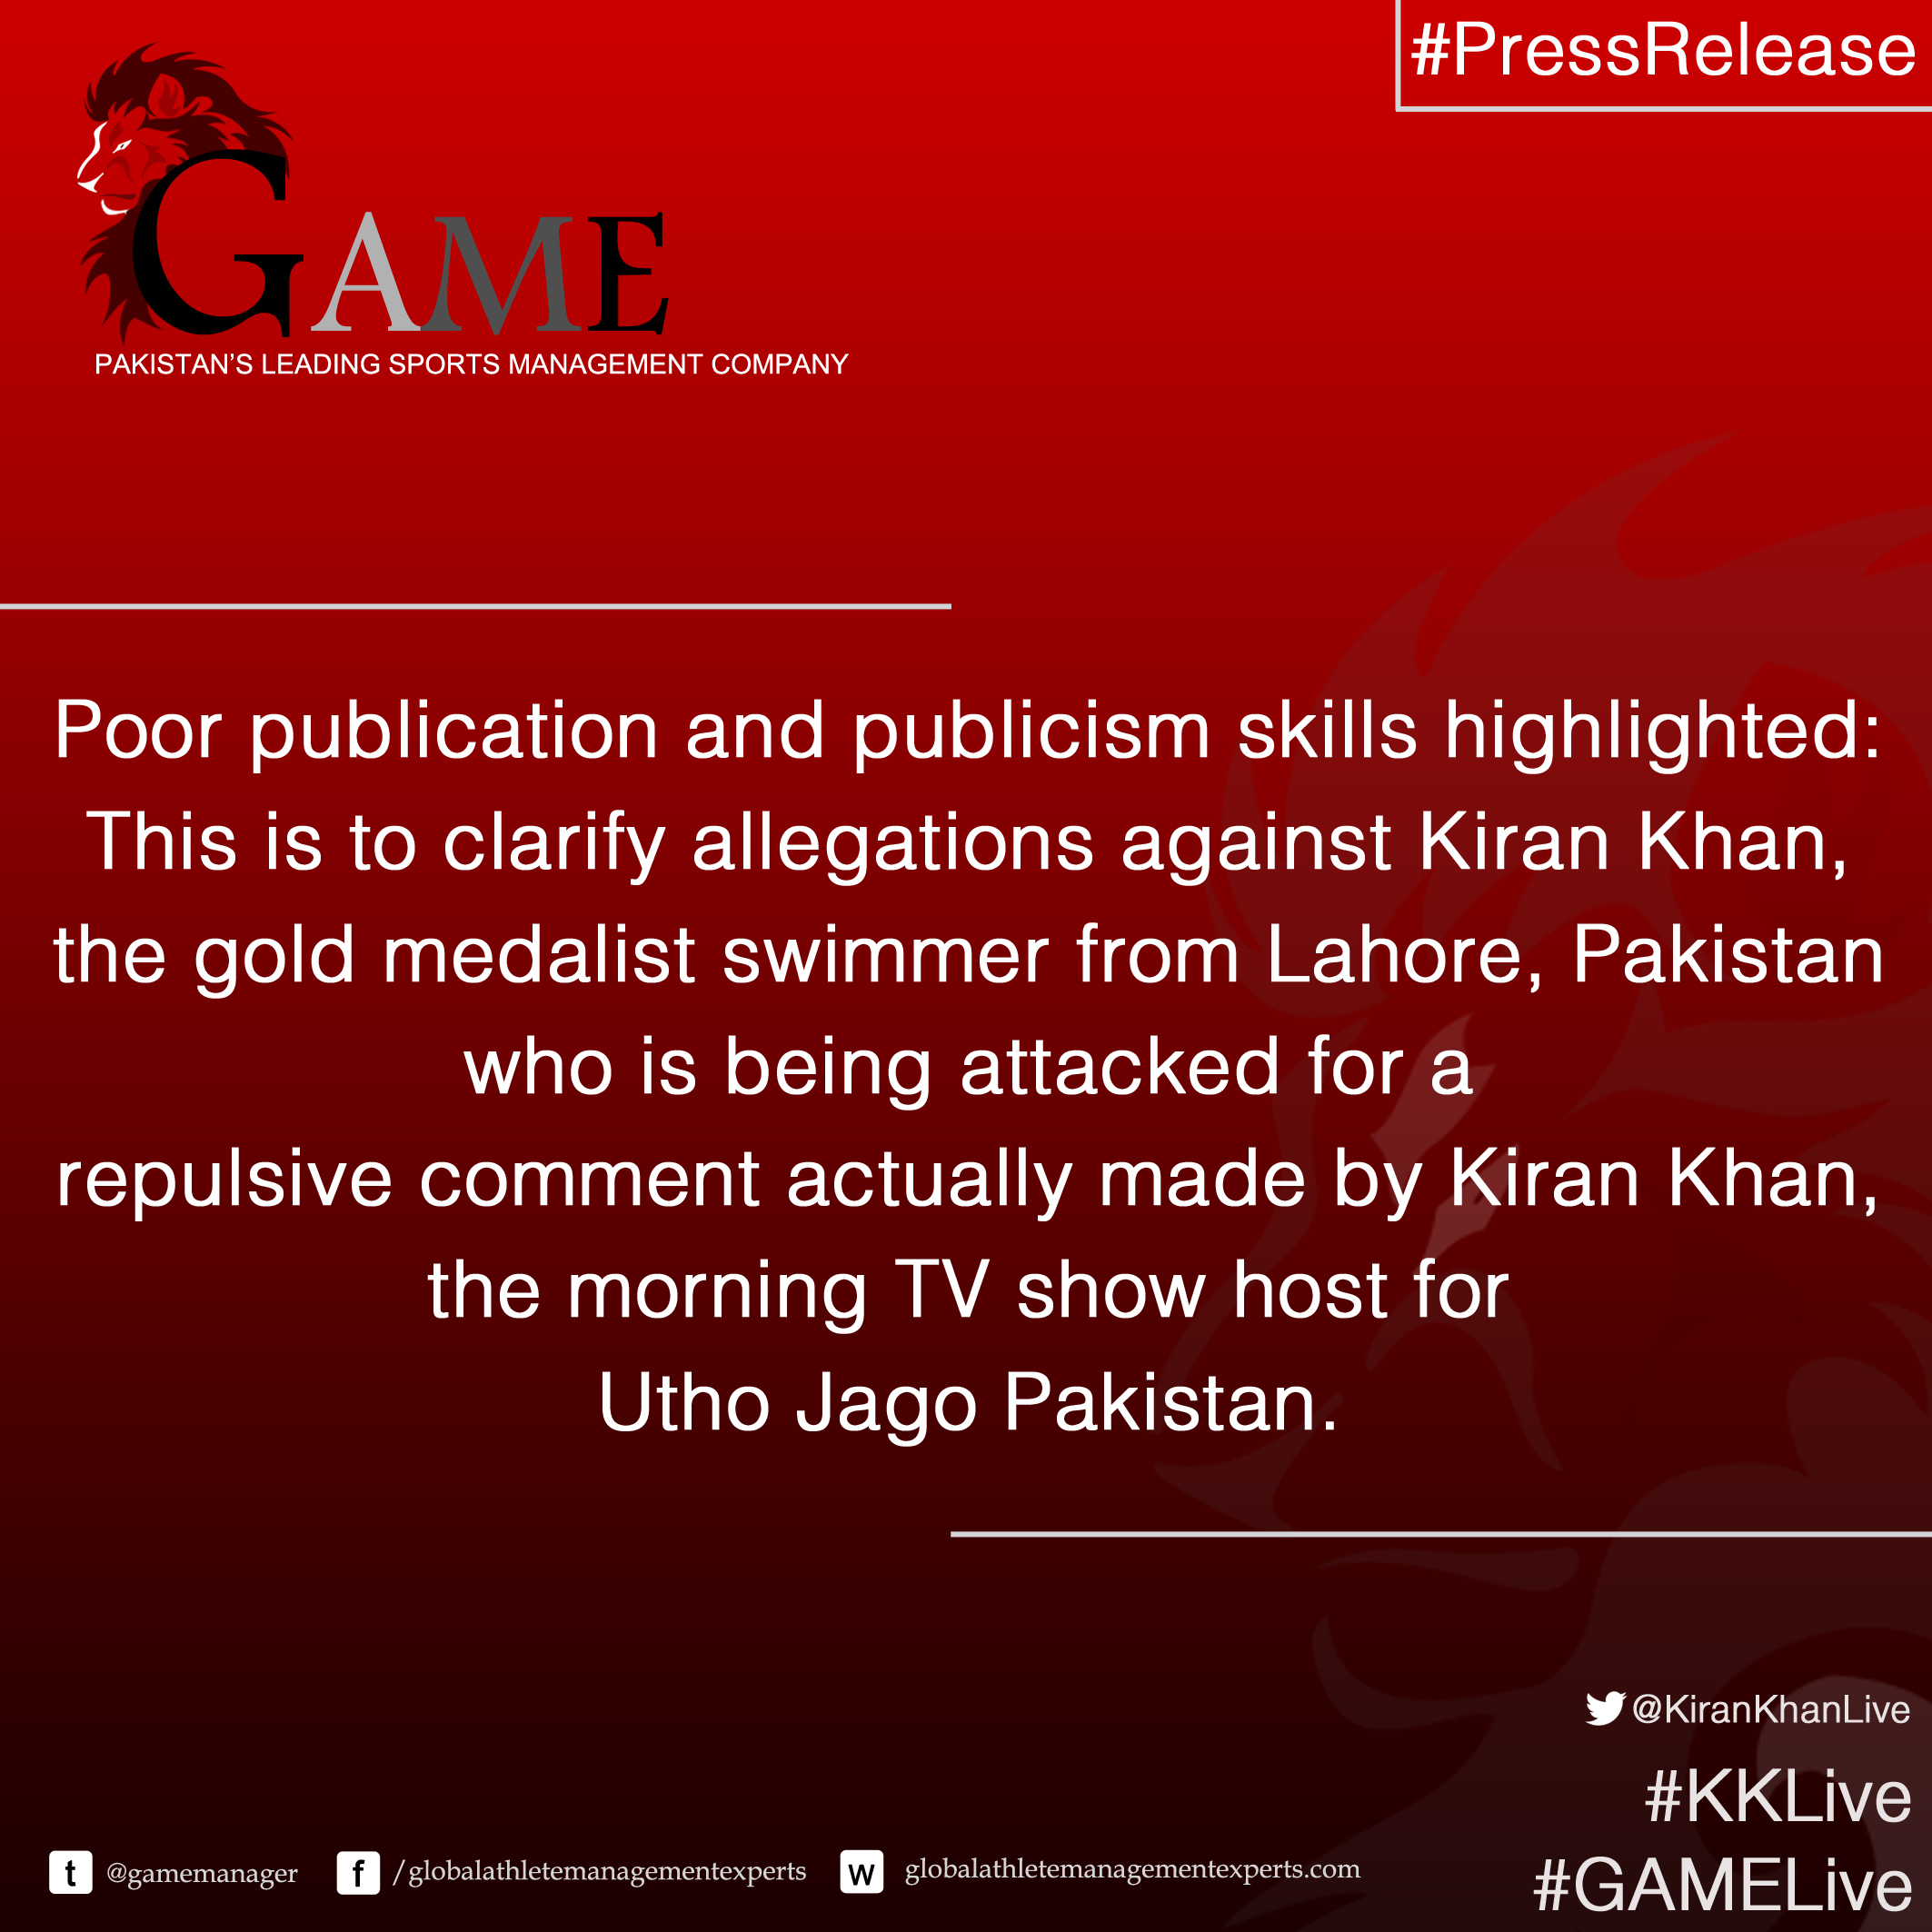 Pakistan's Poor Publication and Publicism Skills – Kiran Khan attacked on unsubstantiated grounds